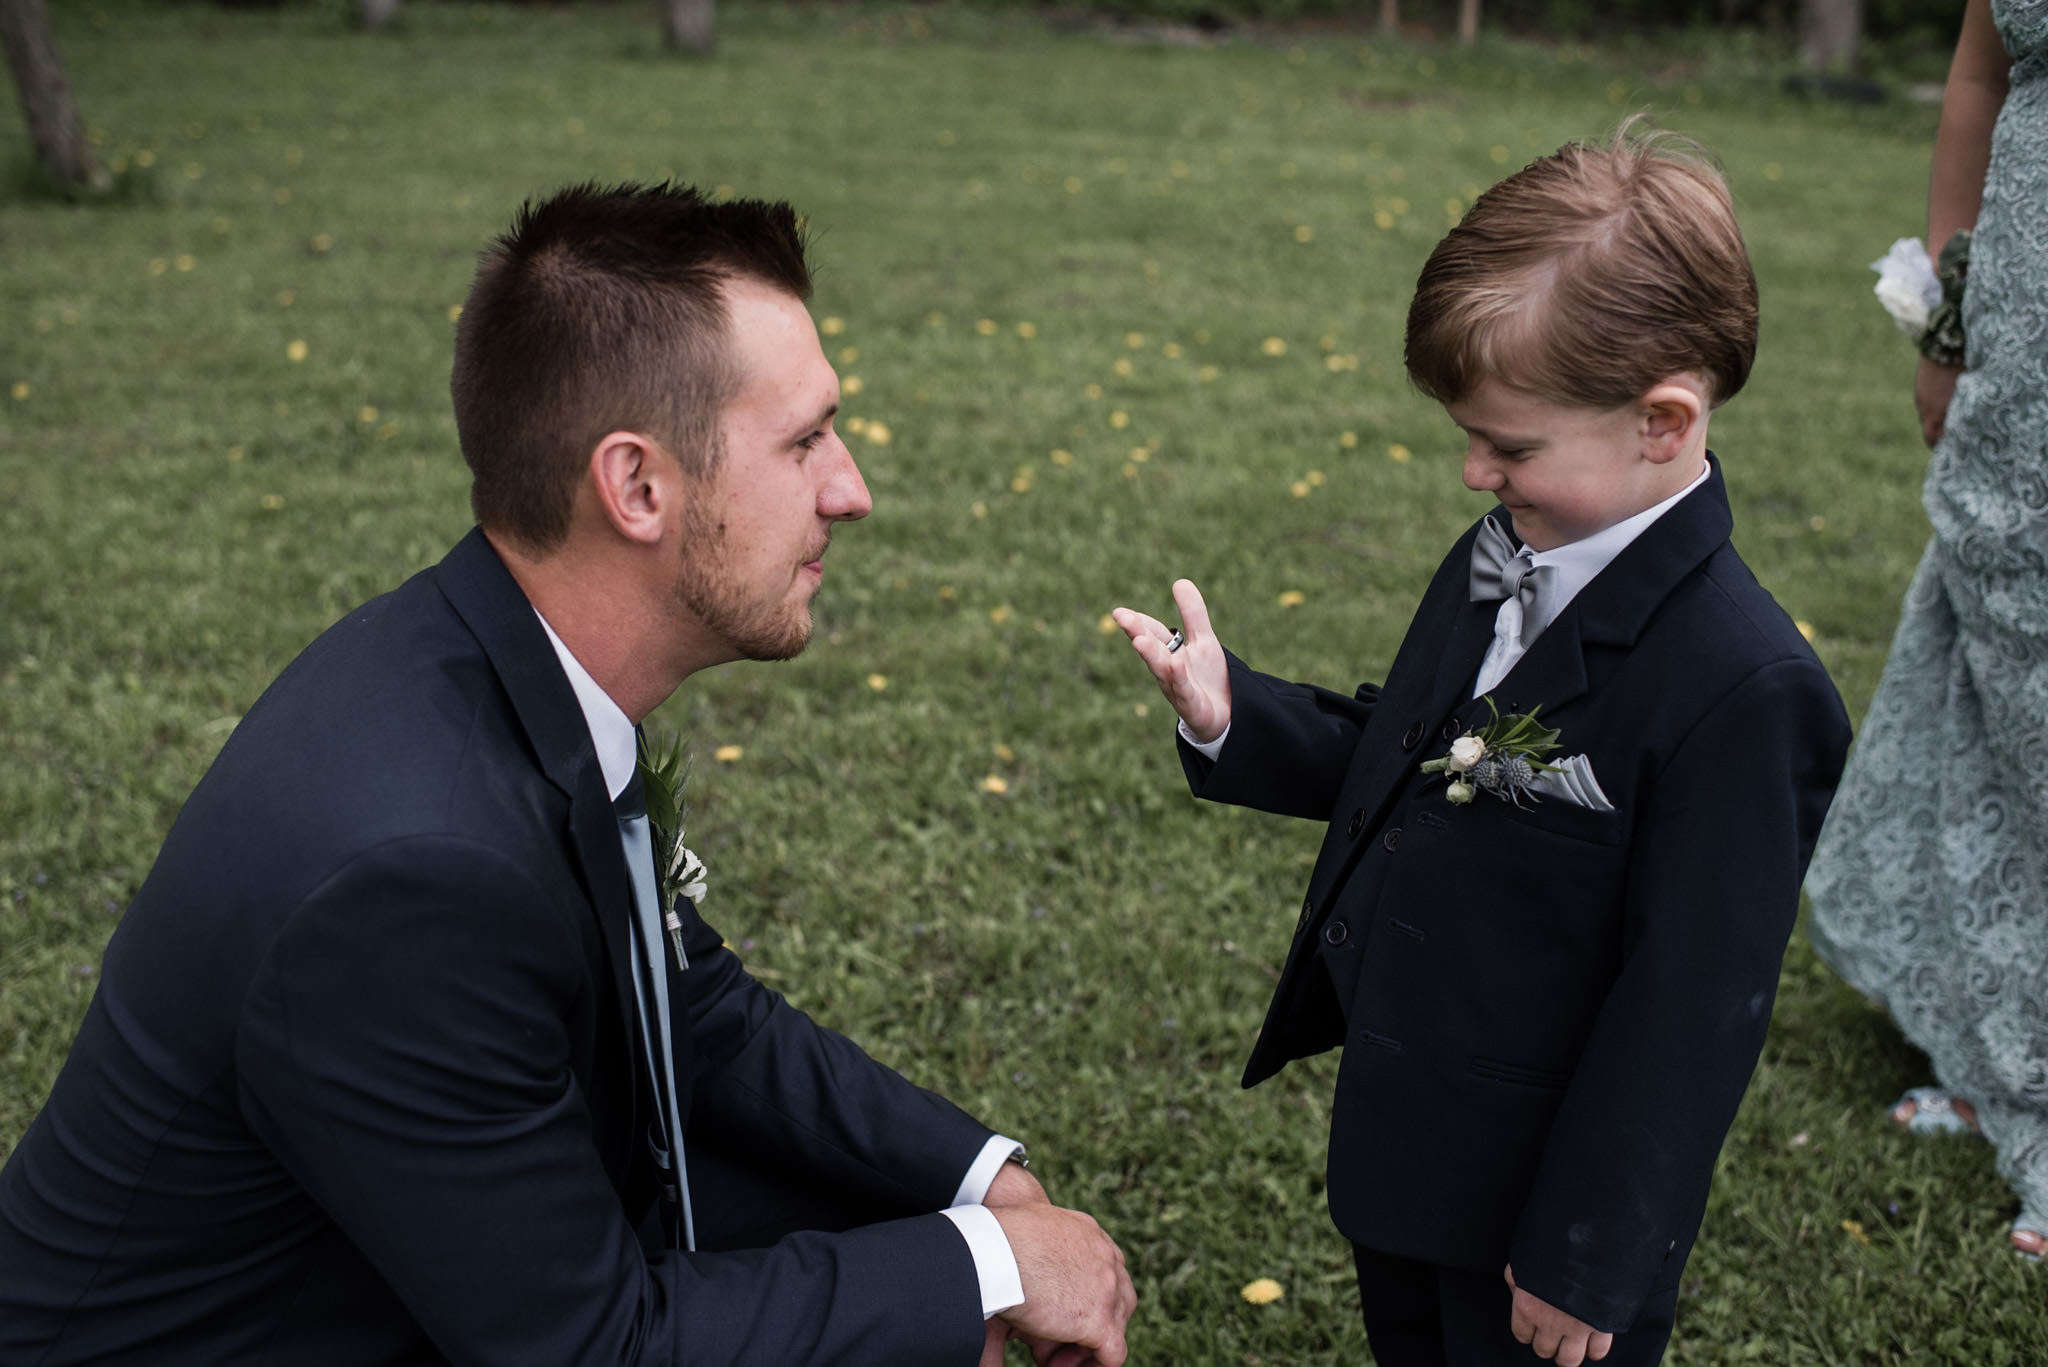 169-ring-boy-candid-groom-outdoor-wedding-toronto.jpg